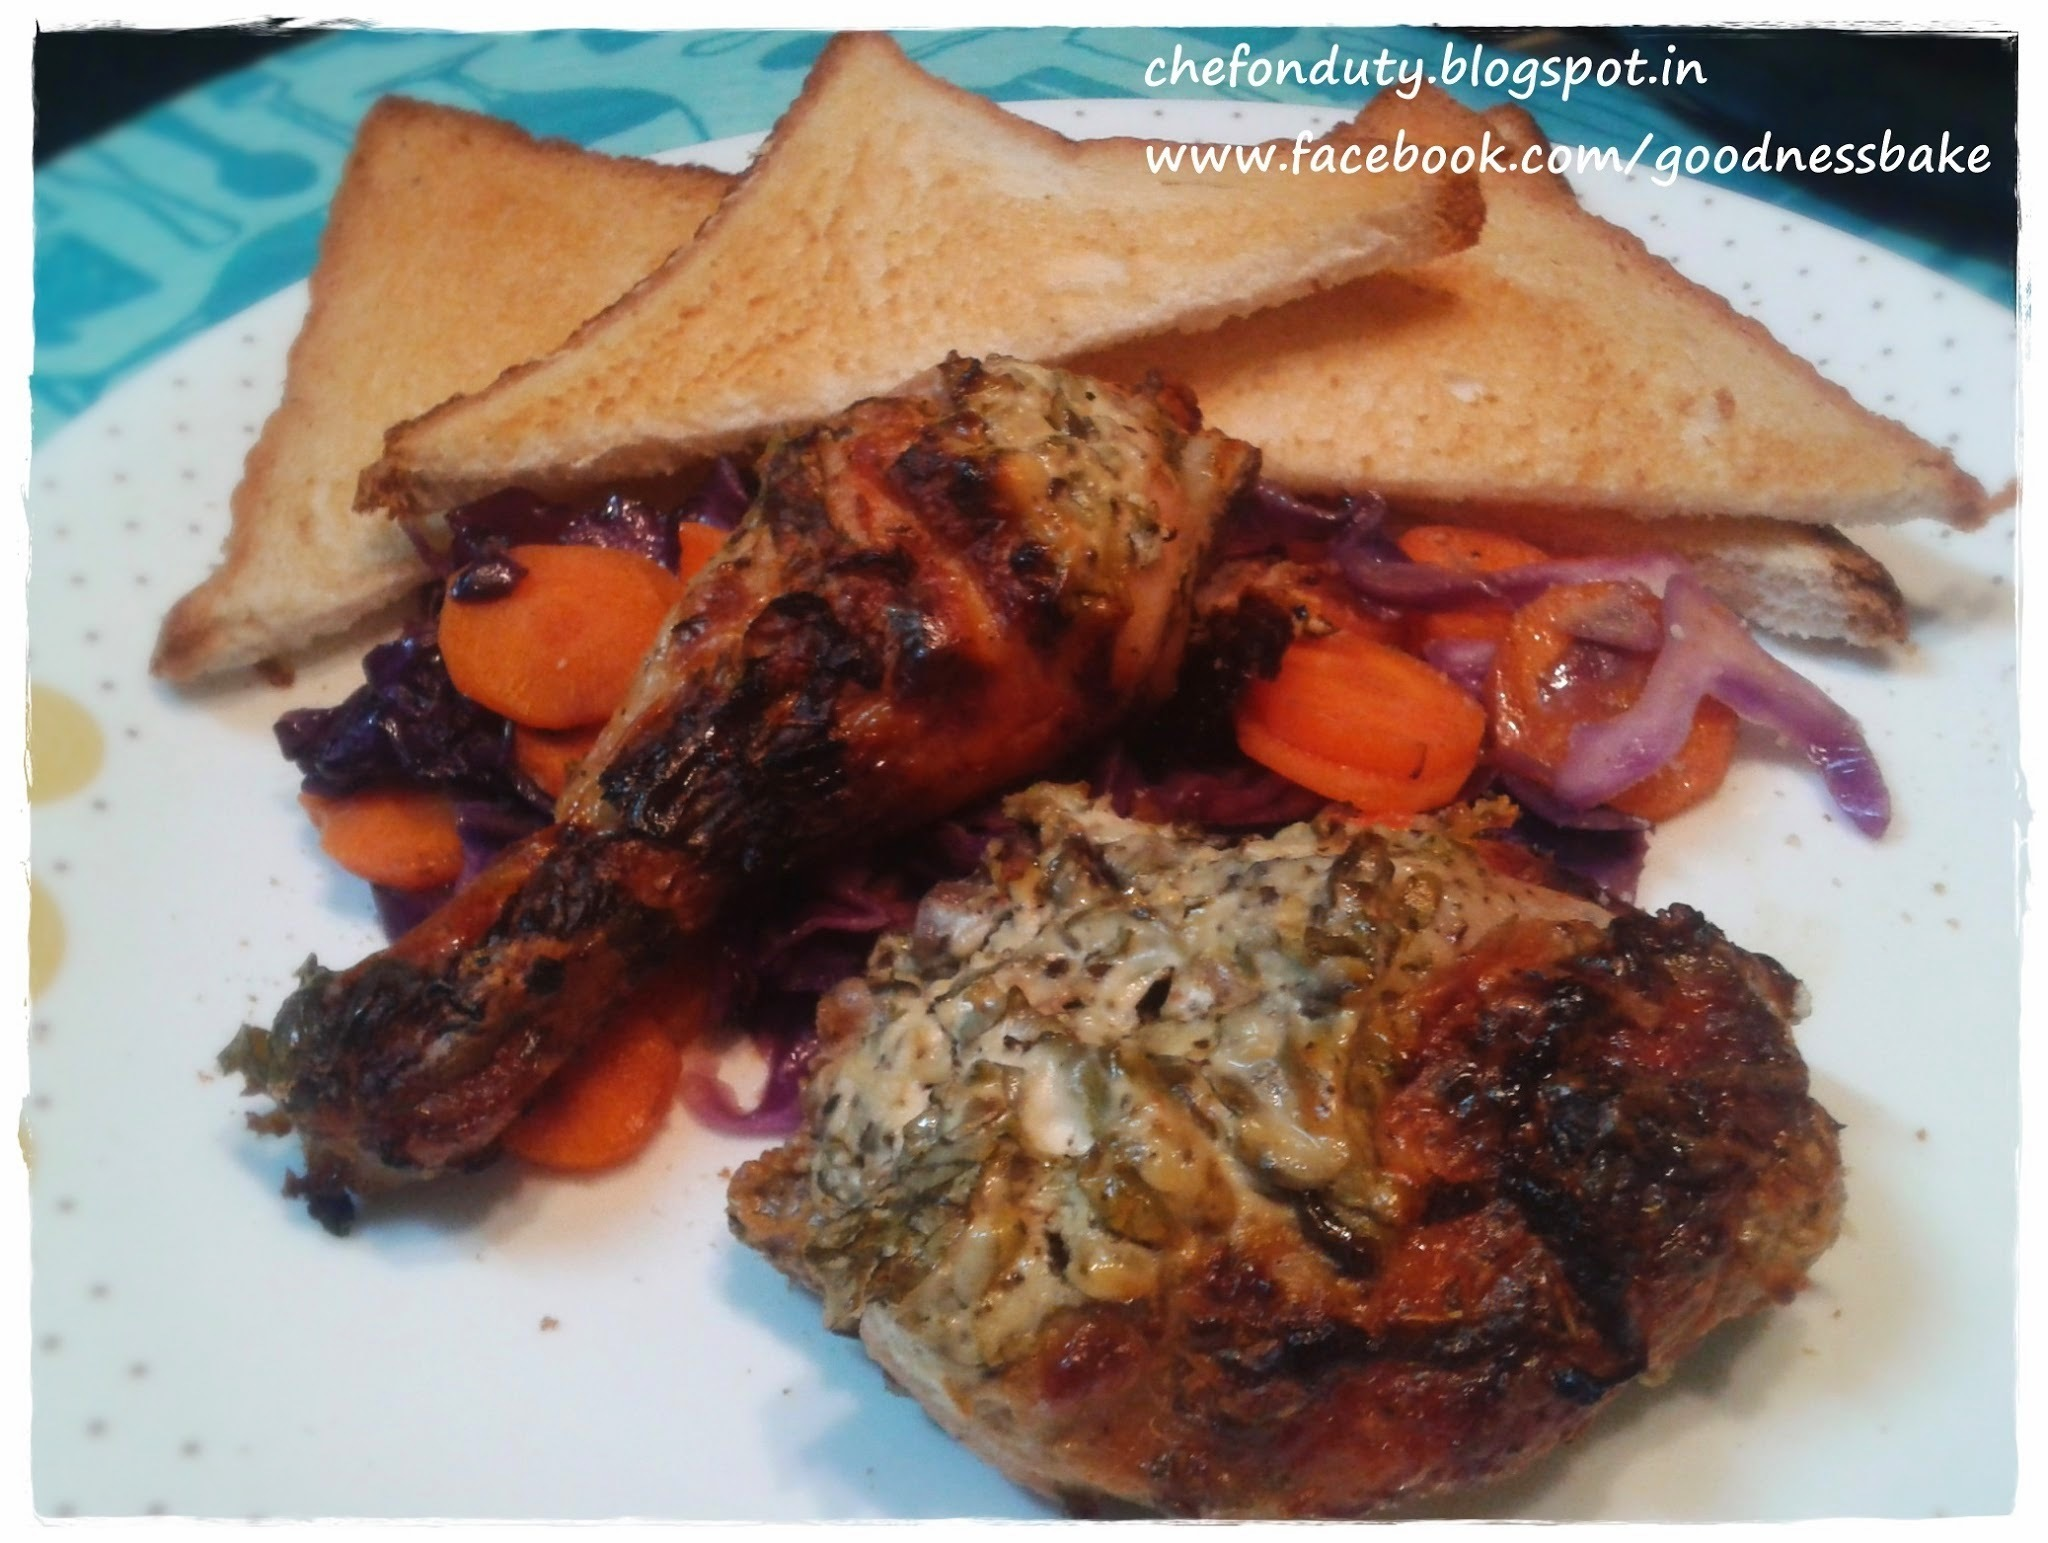 Baked Chicken with Yogurt and Herb Marinade